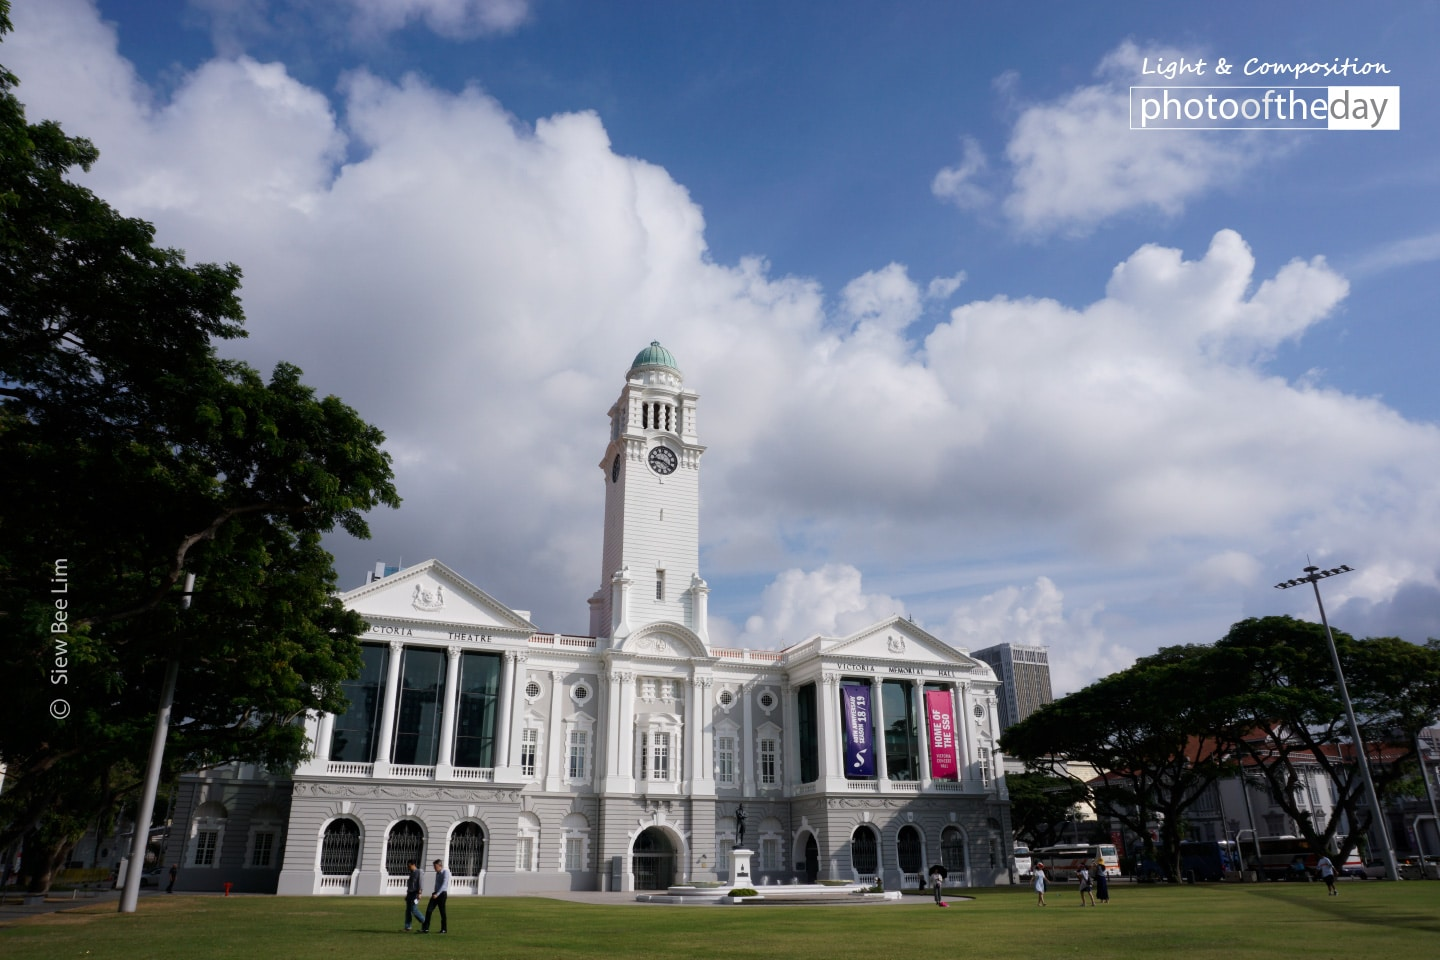 The Victoria Theatre and Concert Hall, by Siew Bee Lim